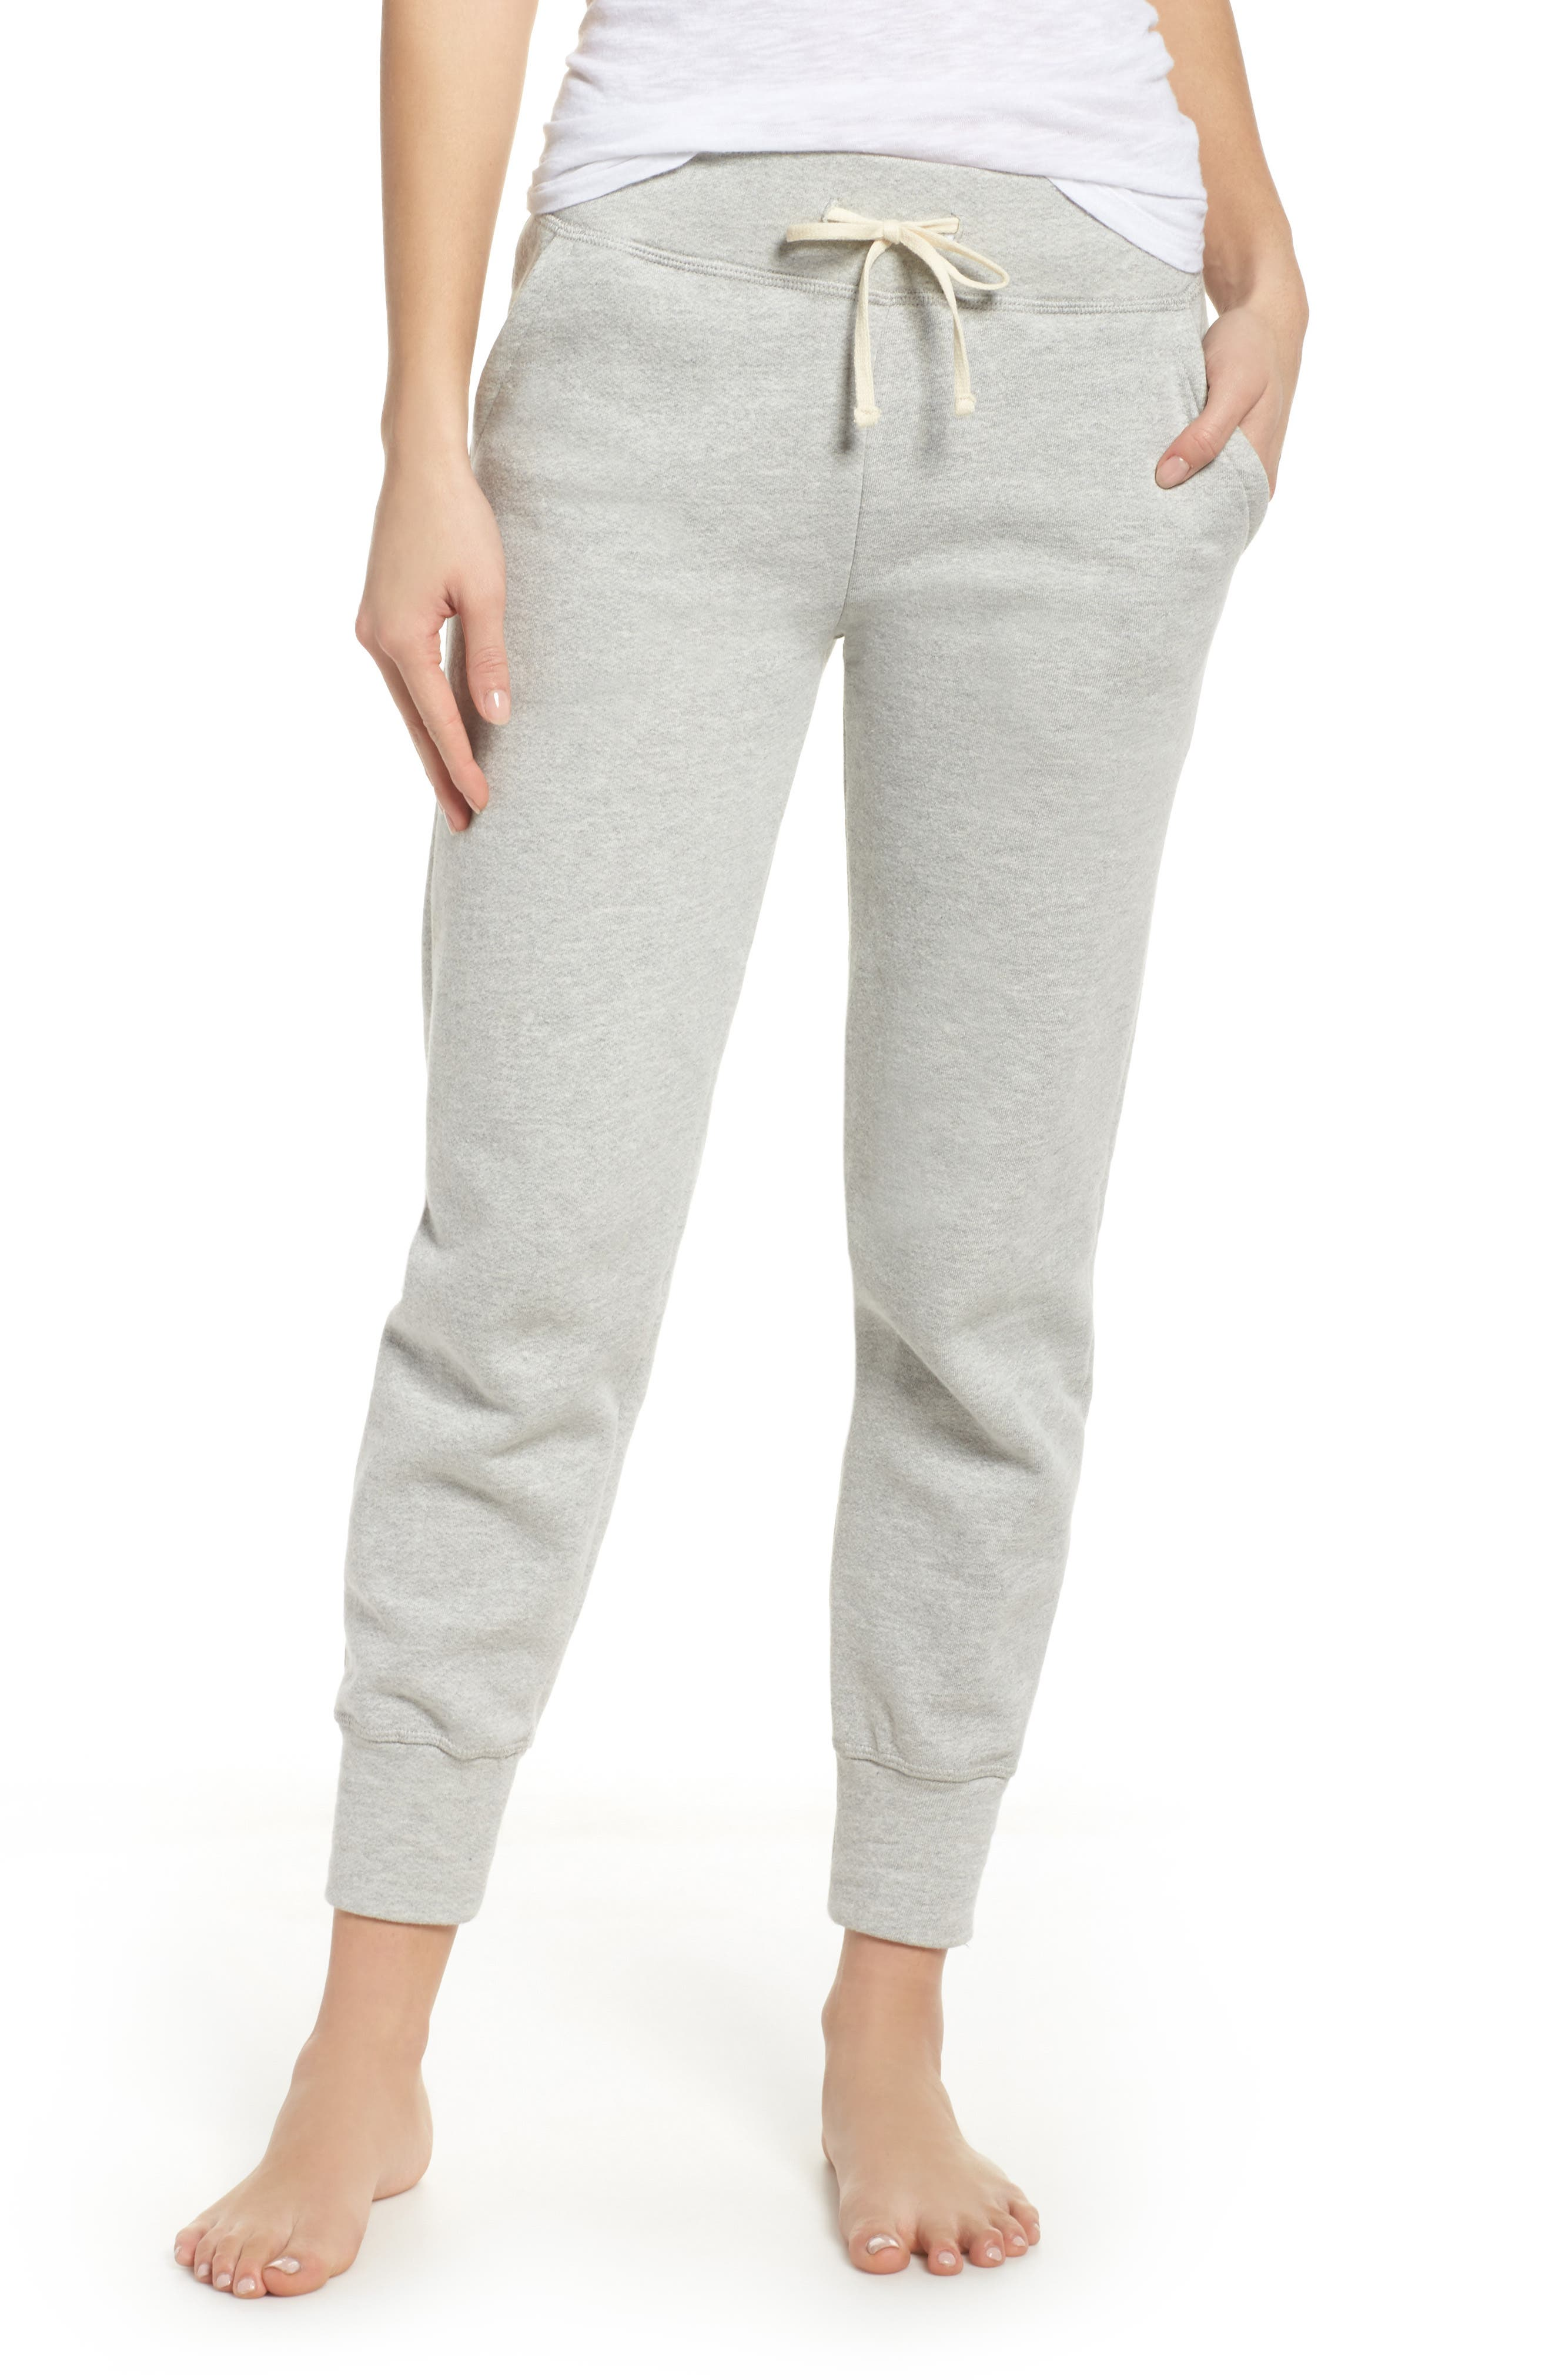 Lounge Jogger Pants,                         Main,                         color, Light Heather  Grey